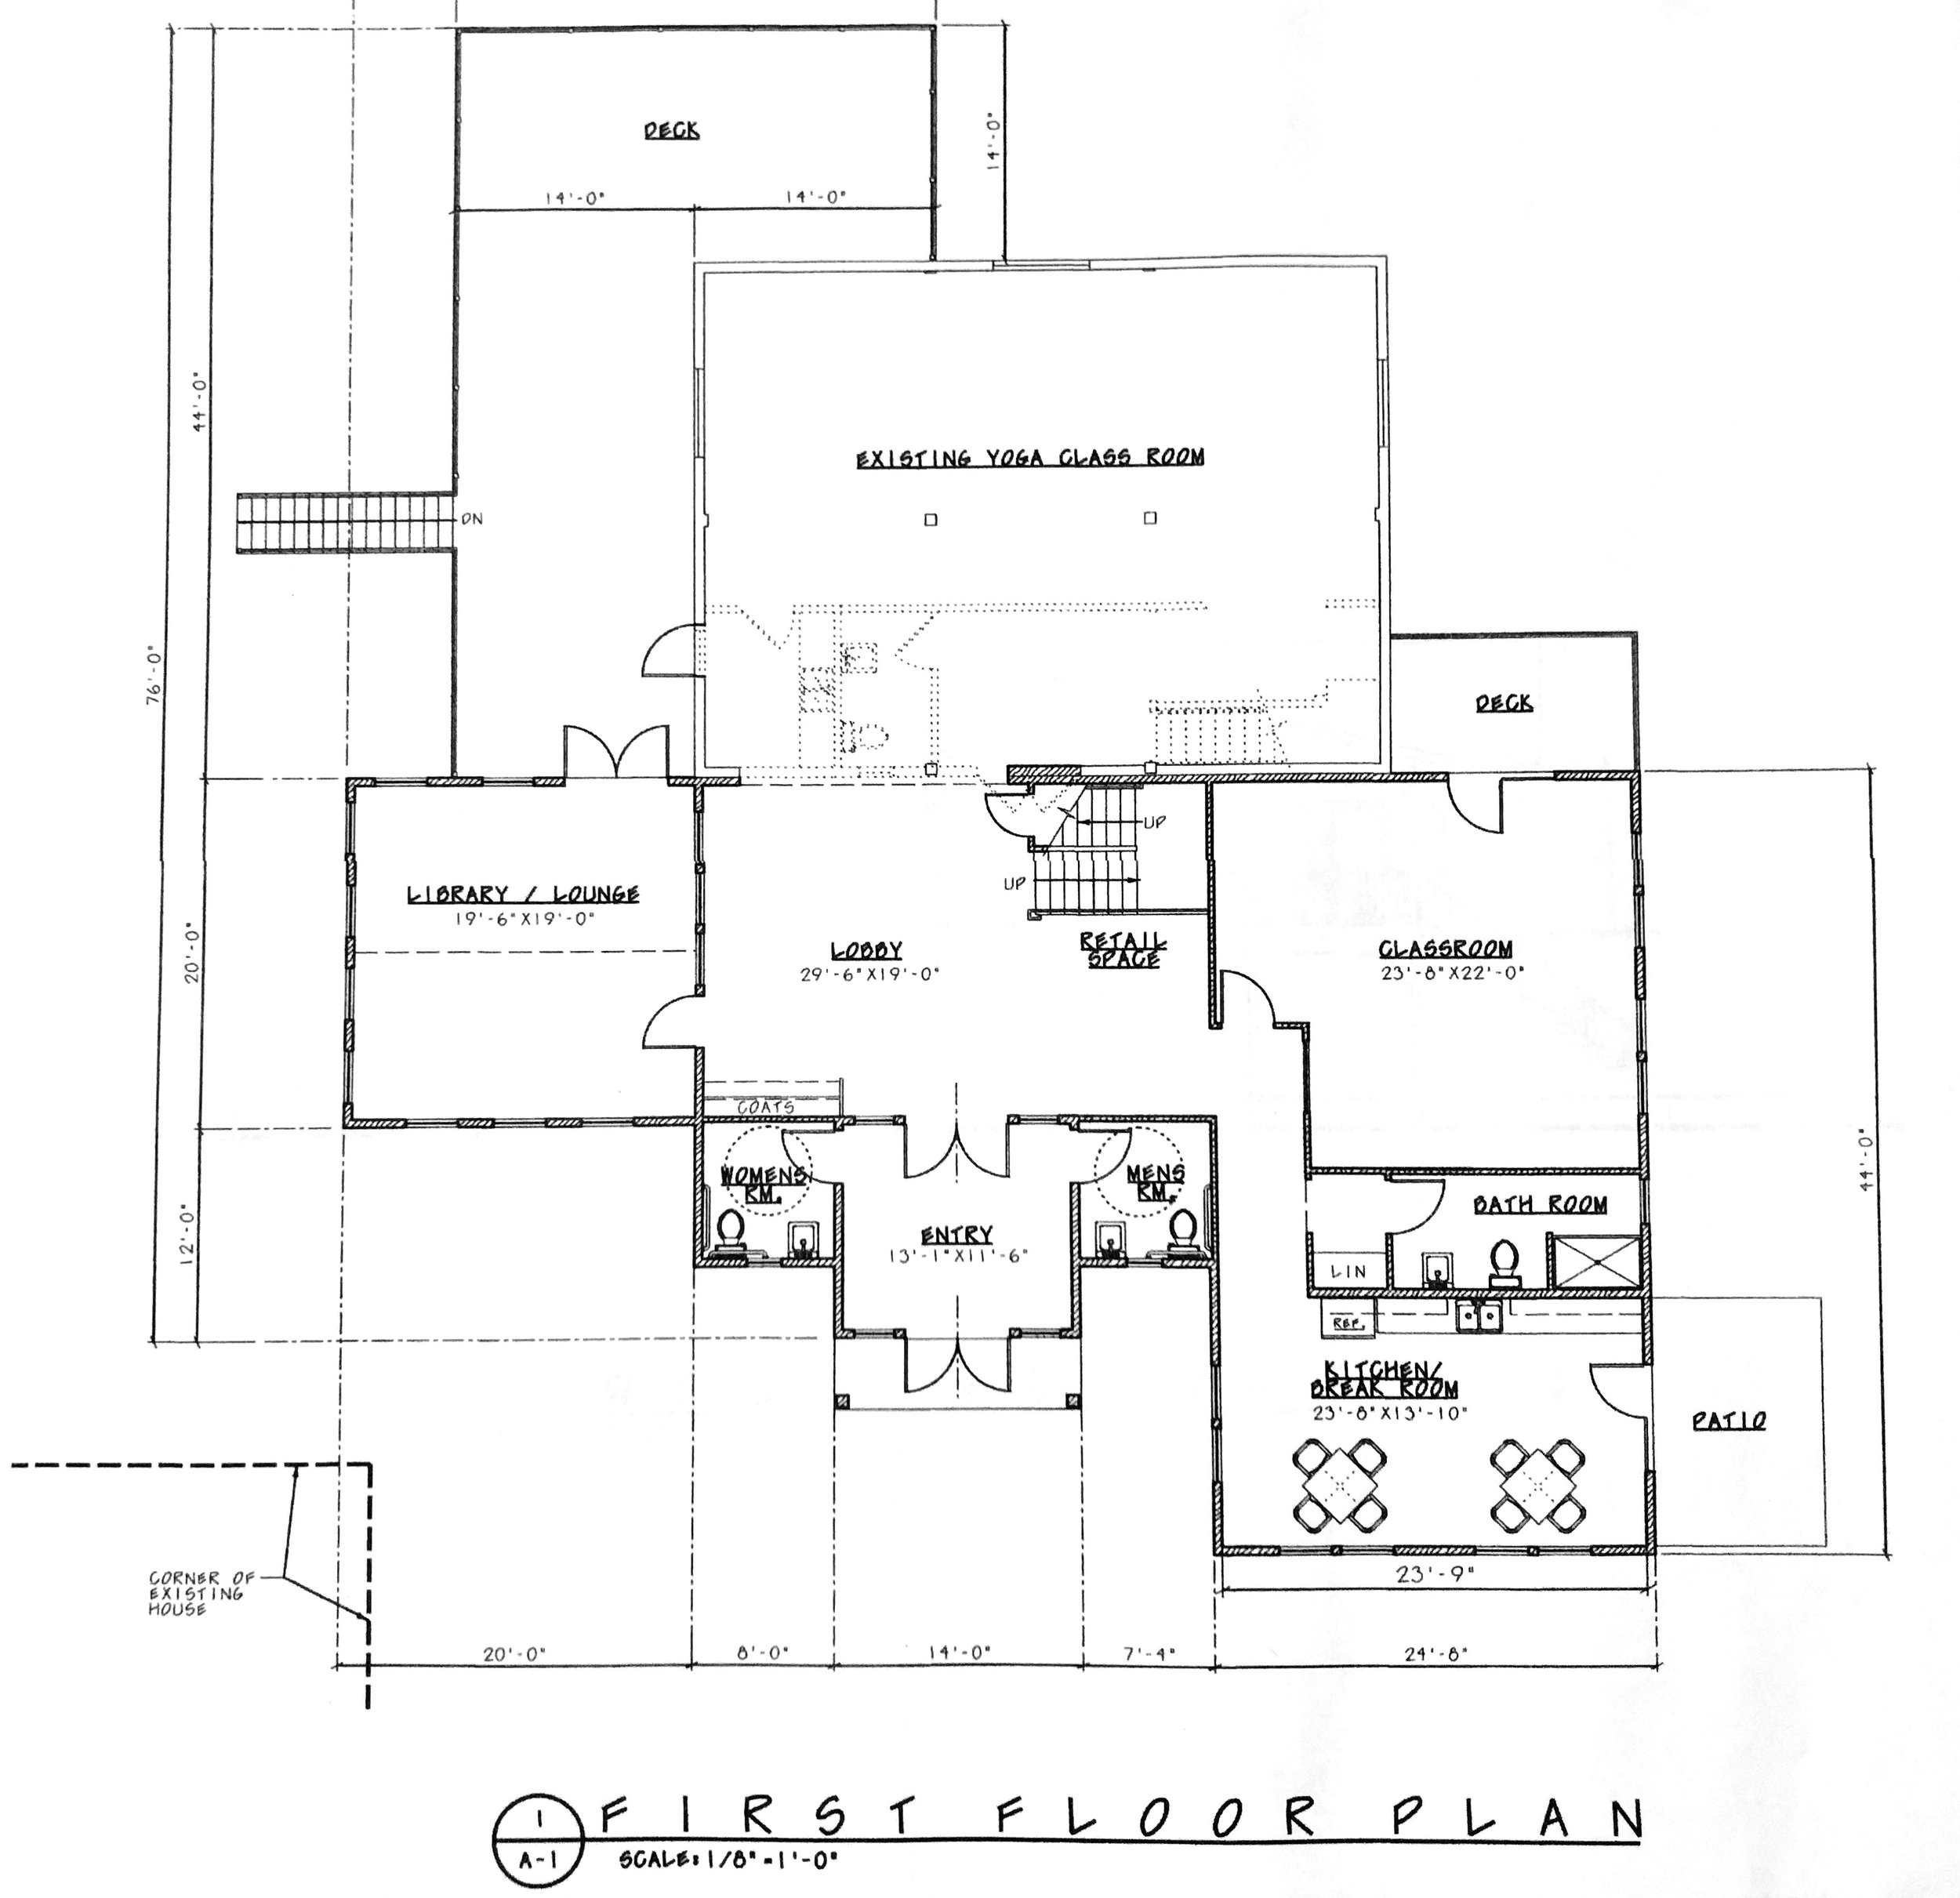 SRFL plan phase 1 - round 5 - FirstFloor.jpg